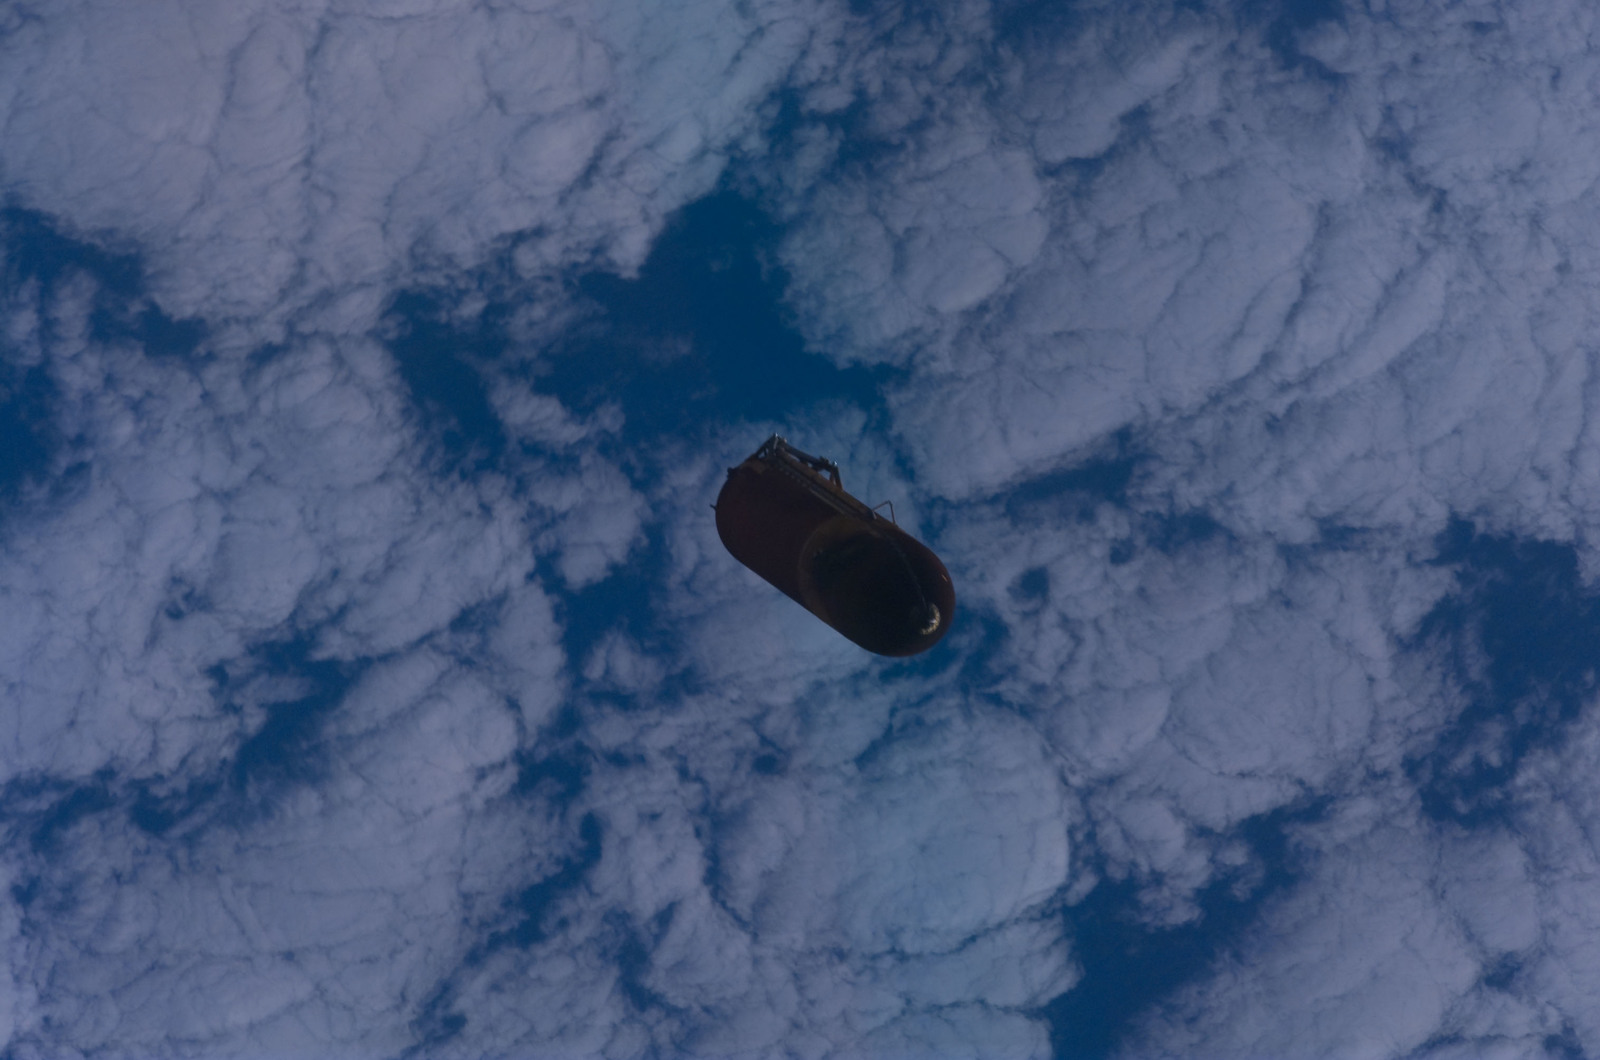 S120E005040 - STS-120 - External Tank after separation from Discovery during the STS-120 Mission